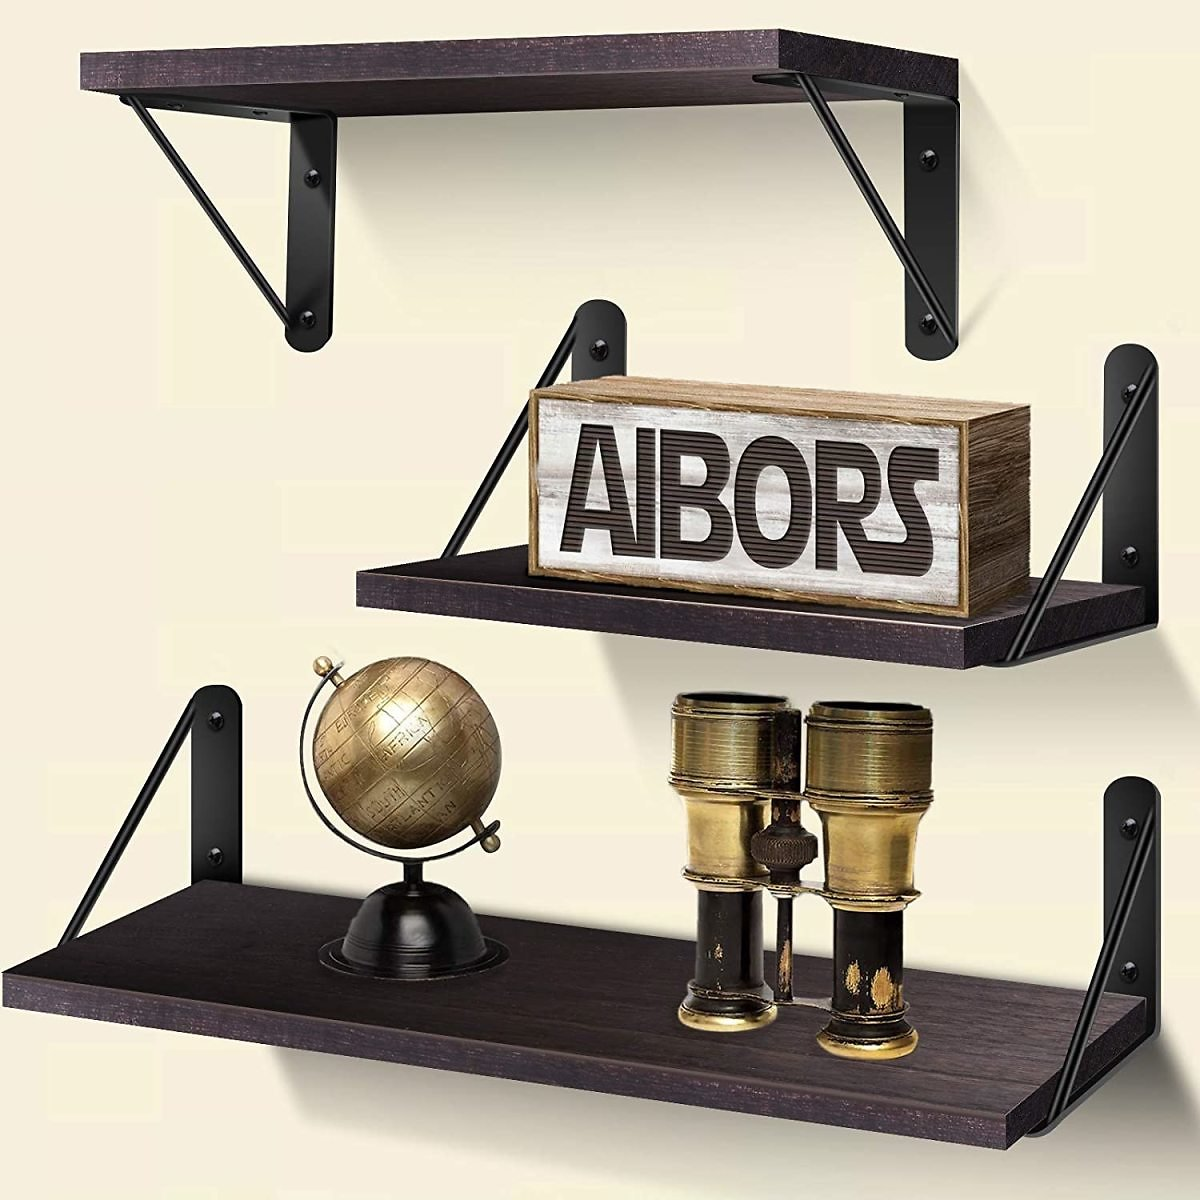 Set of 3 AIBORS Rustic Wood Floating Shelves for Wall for $11.49